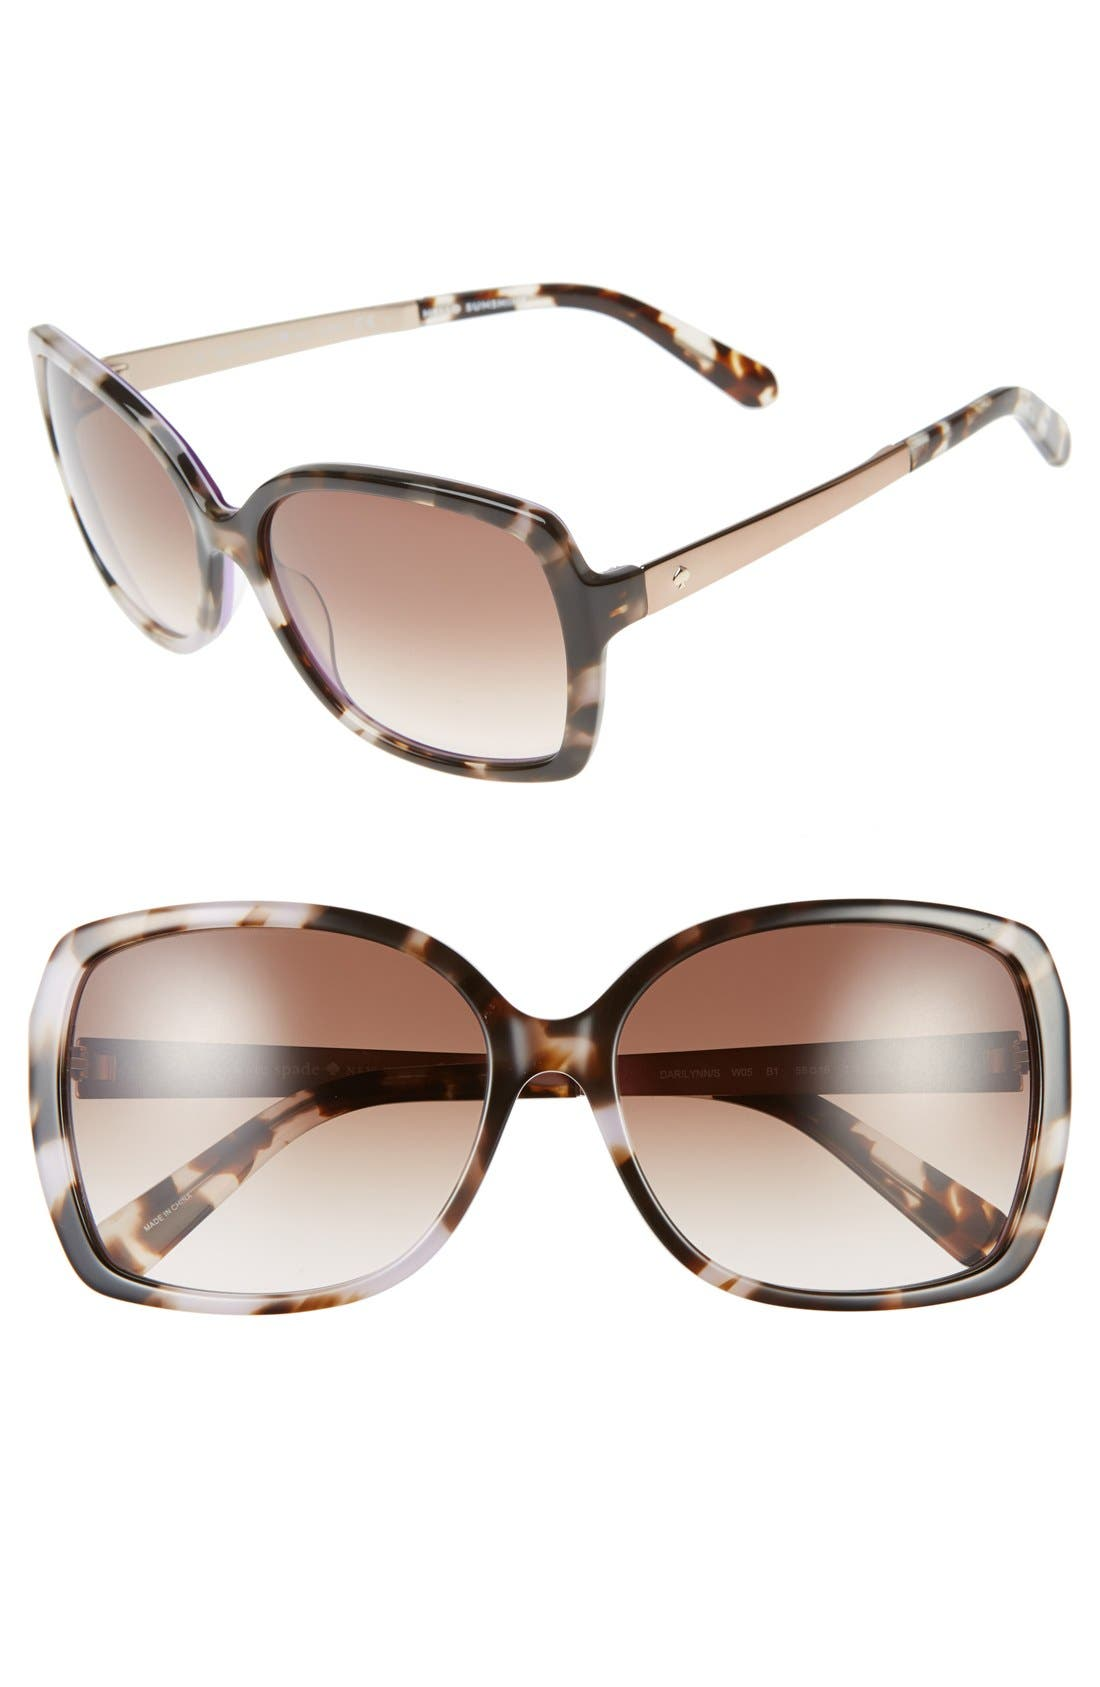 Main Image - kate spade new york 'darrilyn' 58mm butterfly sunglasses